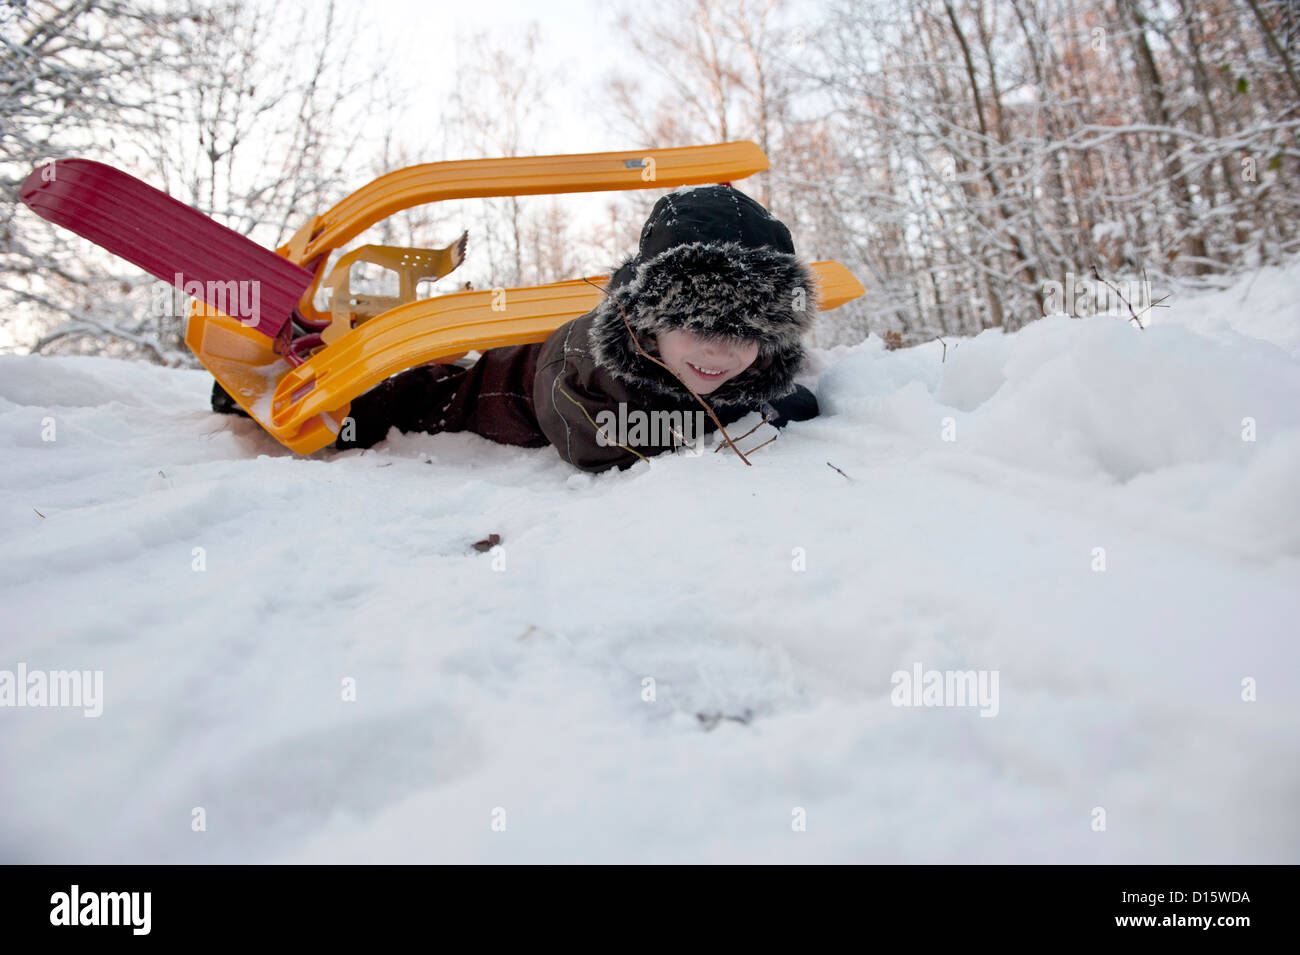 Young boy doing an overturn with a snow sledge - Stock Image